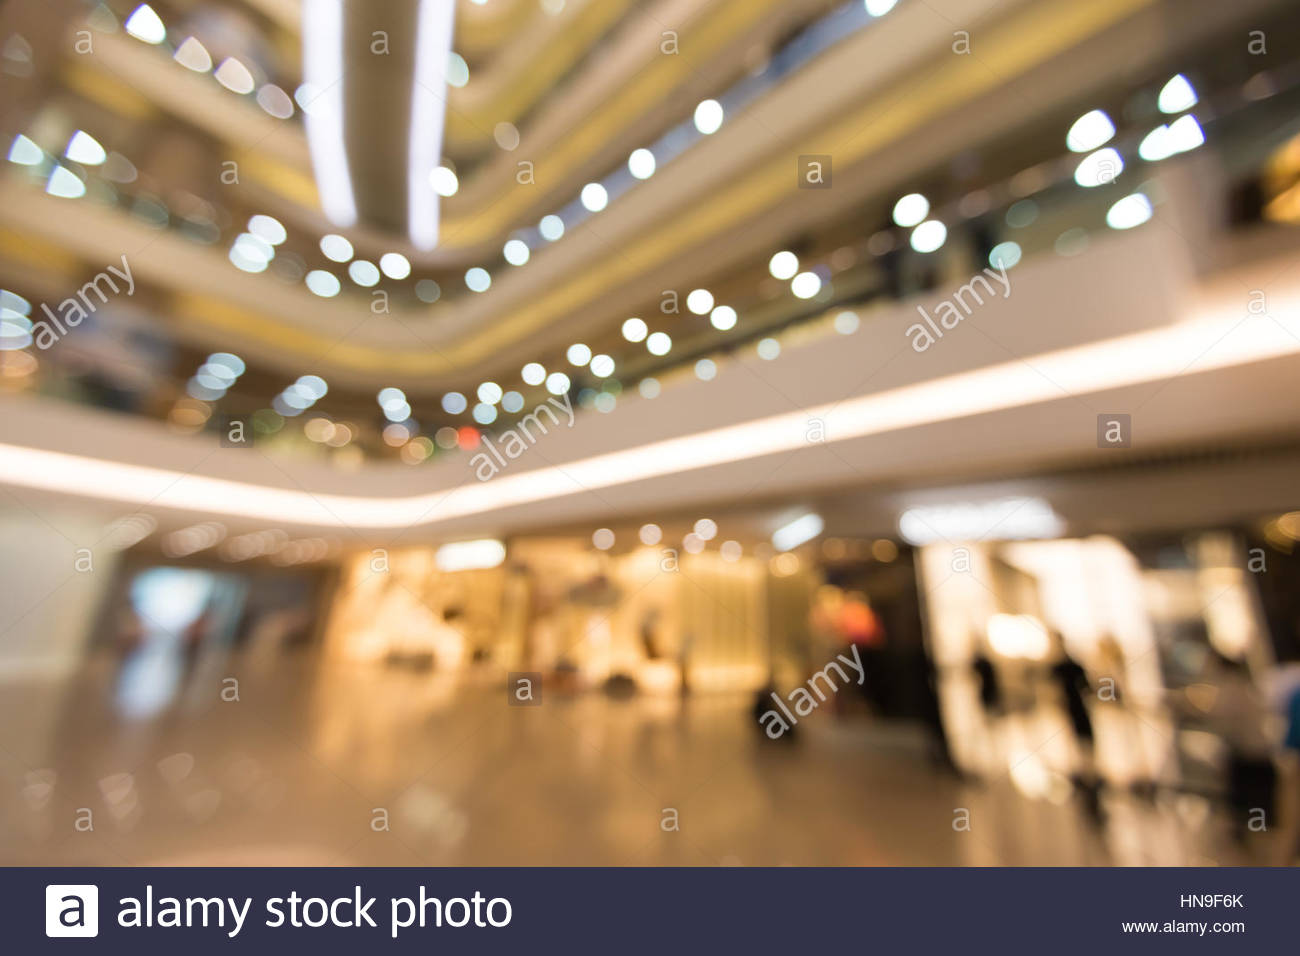 Blurred Shopping mall backgrounds Stock Photo 133589867   Alamy 1300x956